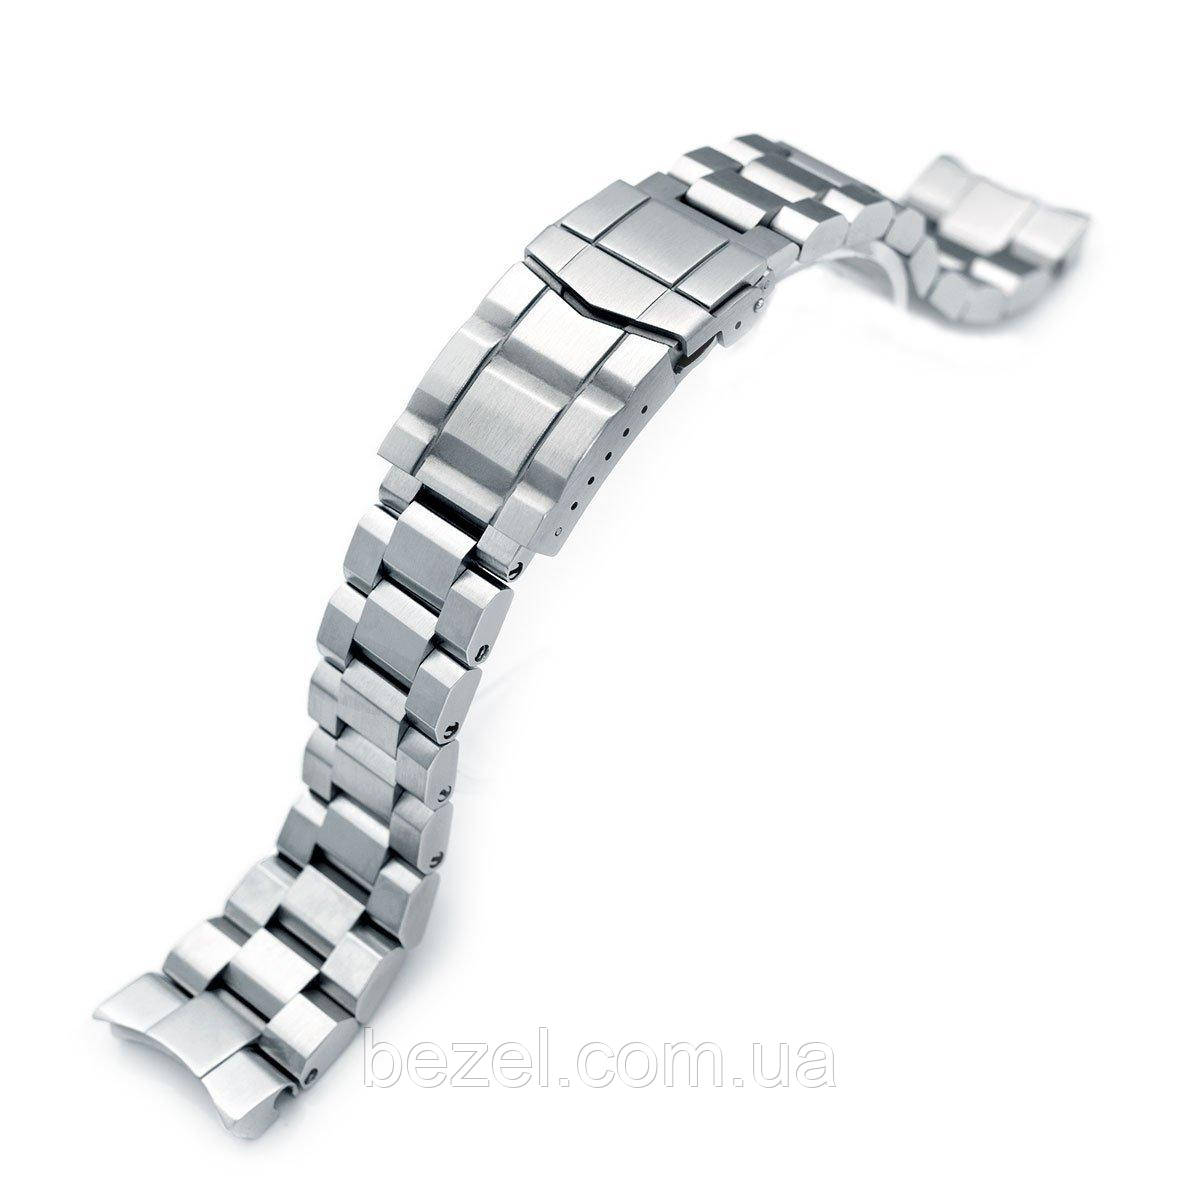 22mm Hexad Oyster 316L Stainless Steel Watch Band for Seiko Samurai SRPB51, Submariner Diver Clasp